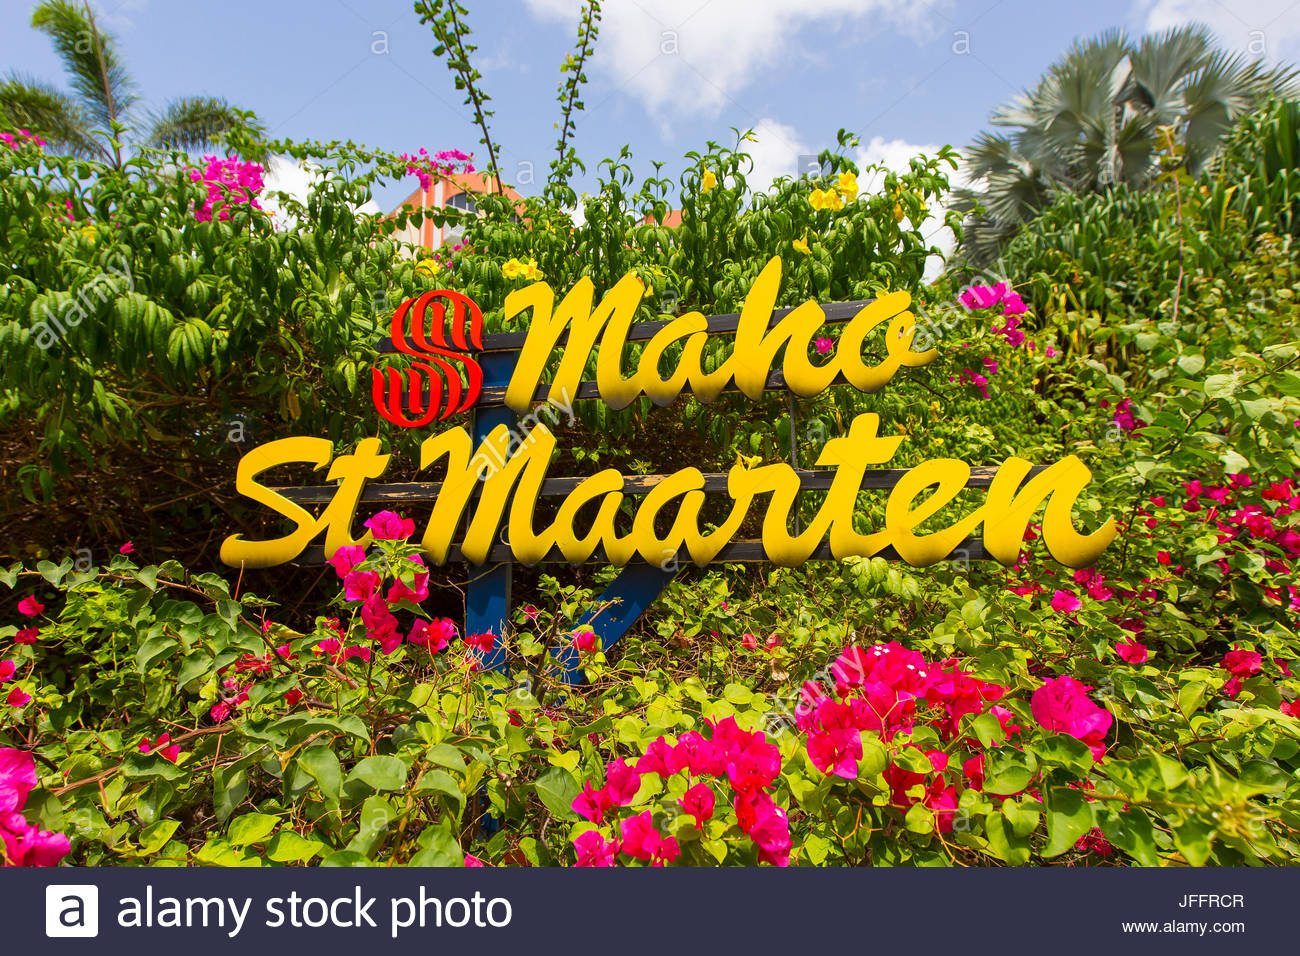 A colorful welcome sign among bright tropical flowers at Maho Beach, Saint Martin. - Stock Image